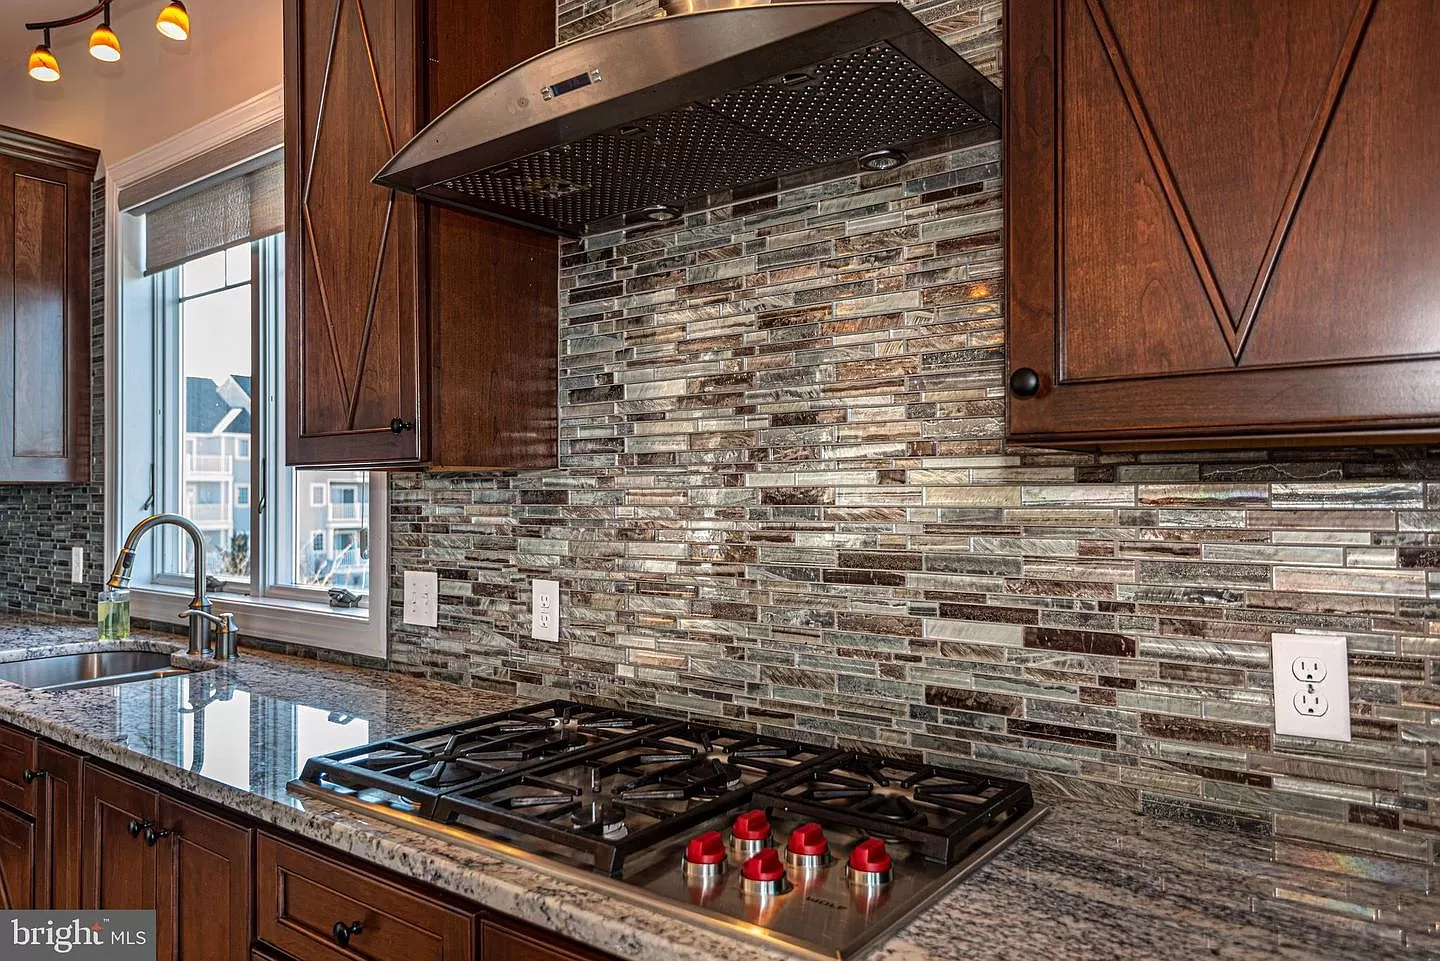 Backsplash Ideas for Granite Countertops | Photo Gallery on Backsplash Ideas For Granite Countertops  id=70221